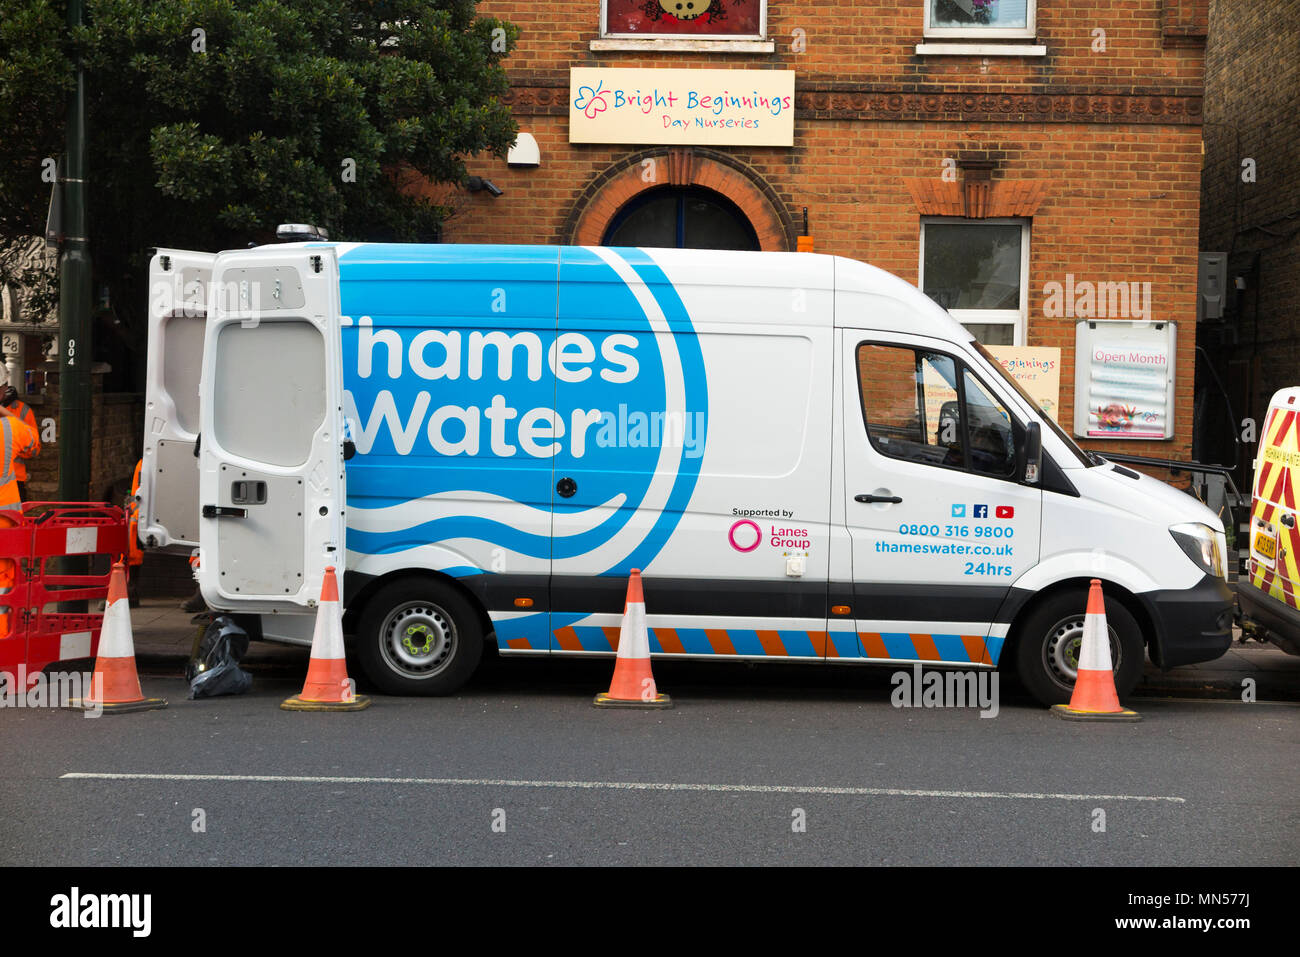 Thames water lorry / van / vans / vehicles at the site of a blocked pipe / drain / drainage / sewer blockage attended by their staff and workers in Twickenham, West London. UK (96) - Stock Image